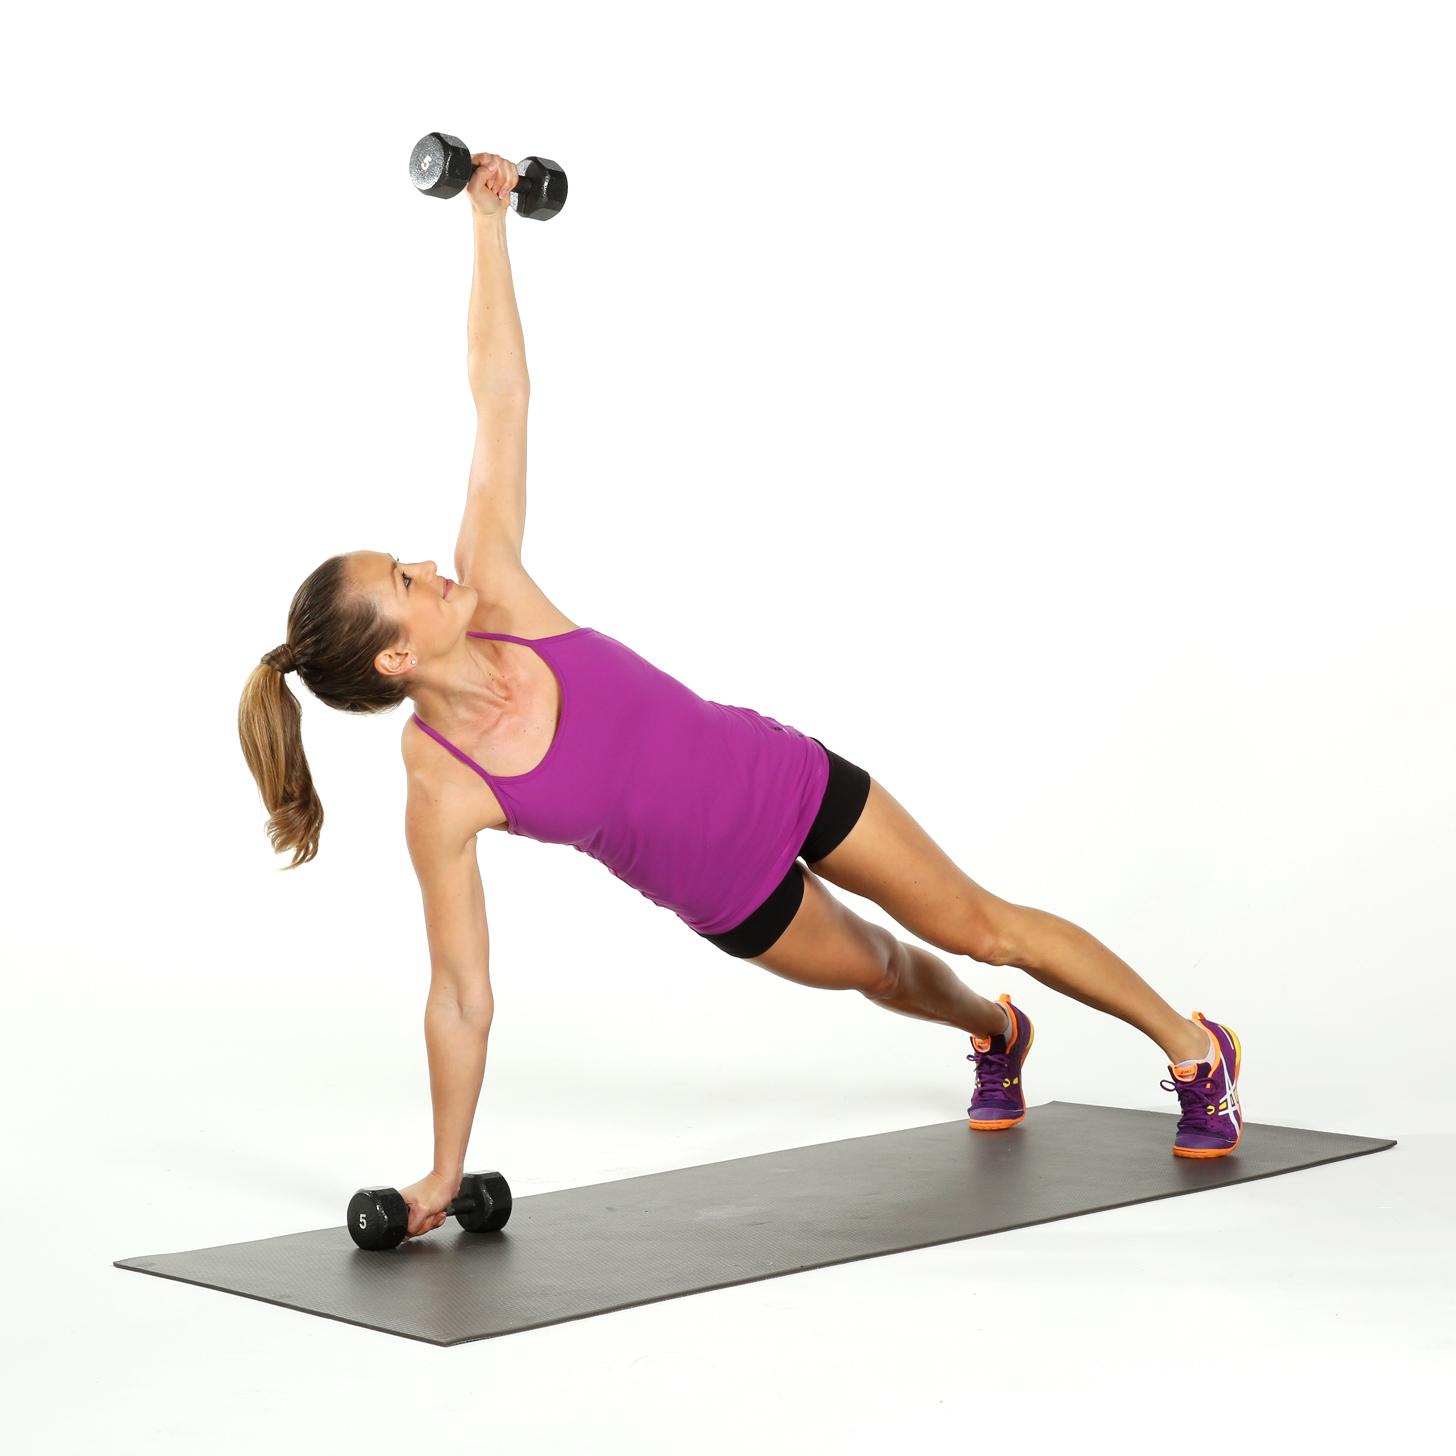 Plank and Rotate